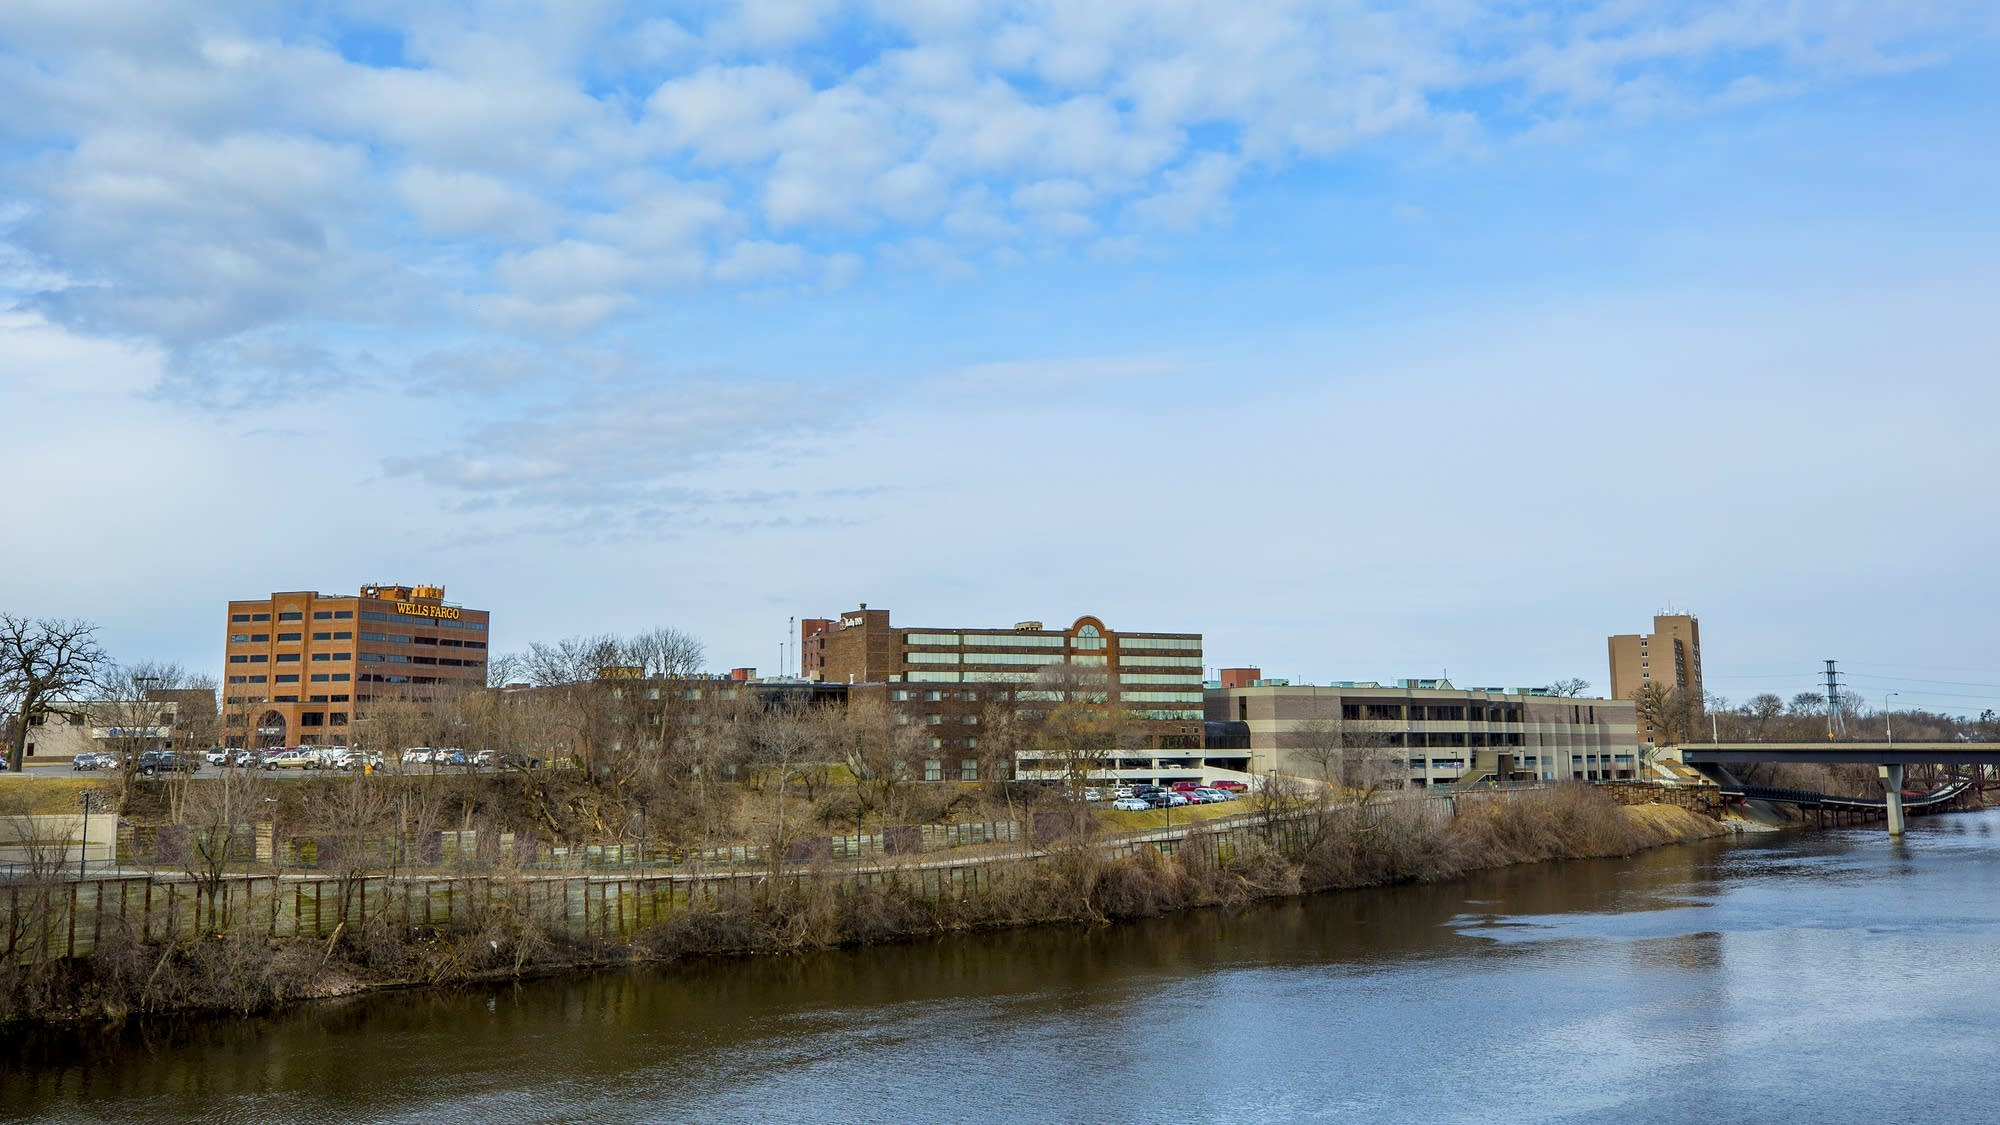 St. Cloud is looking at how to incorporate the river into new development.